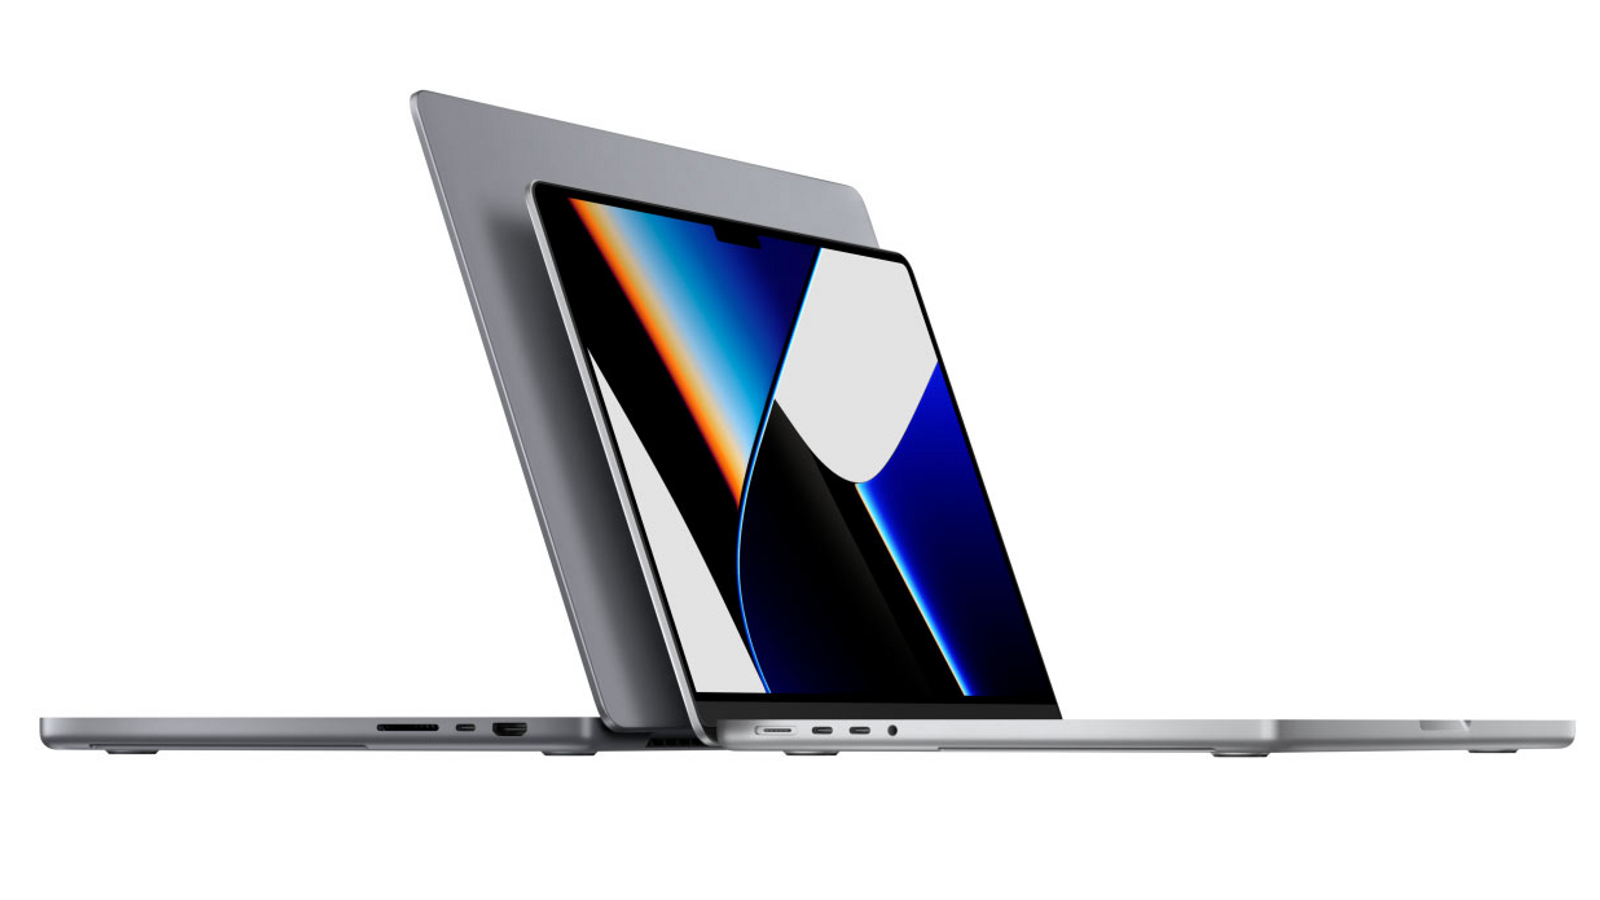 Apple unveils big changes to Macbook Pro laptops and AirPods at latest launch event